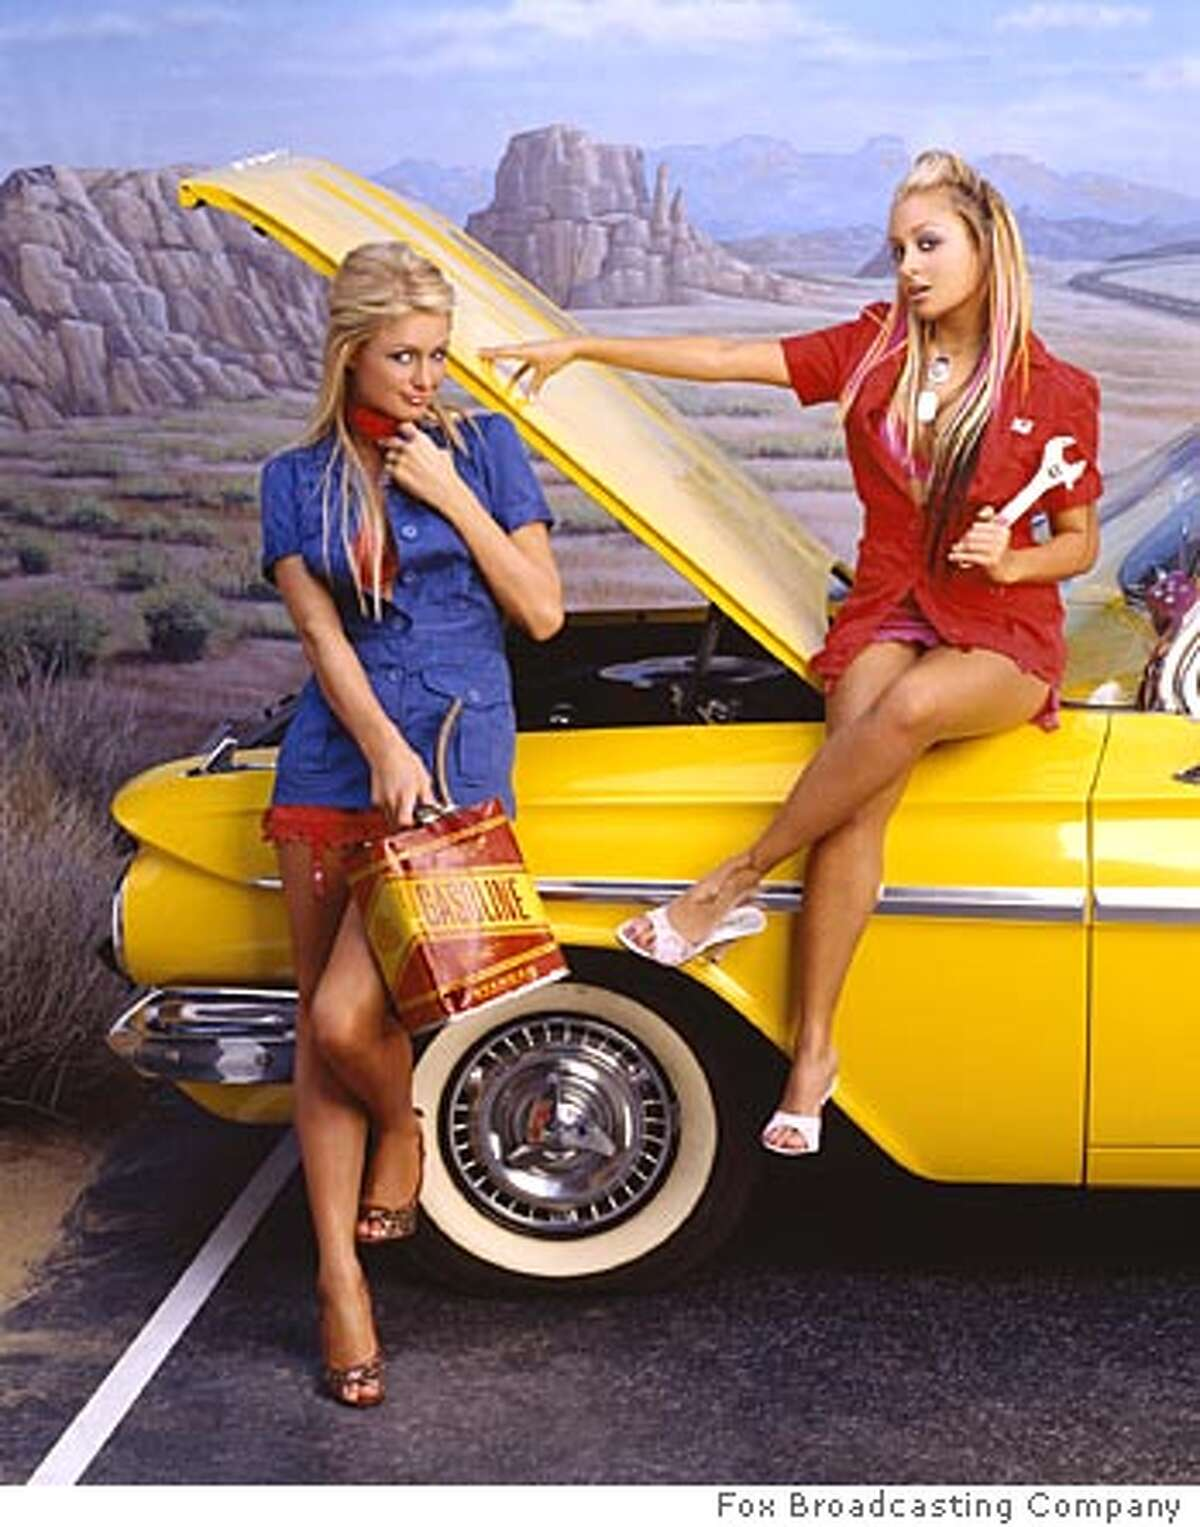 """GOODMAN16 THE SIMPLE LIFE 2: """"Celebutantes"""" and best friends Paris Hilton (L) and Nicole Richie (R) pack up their Louis Vuitton bags and embark in the ultimate road trip when THE SIMPLE LIFE 2 debuts later this year on FOX. � �2004 FOX BROADCASTING COMPANY. Ran on: 06-16-2004 Paris Hilton: One half of TVs Dumb and Dumber."""